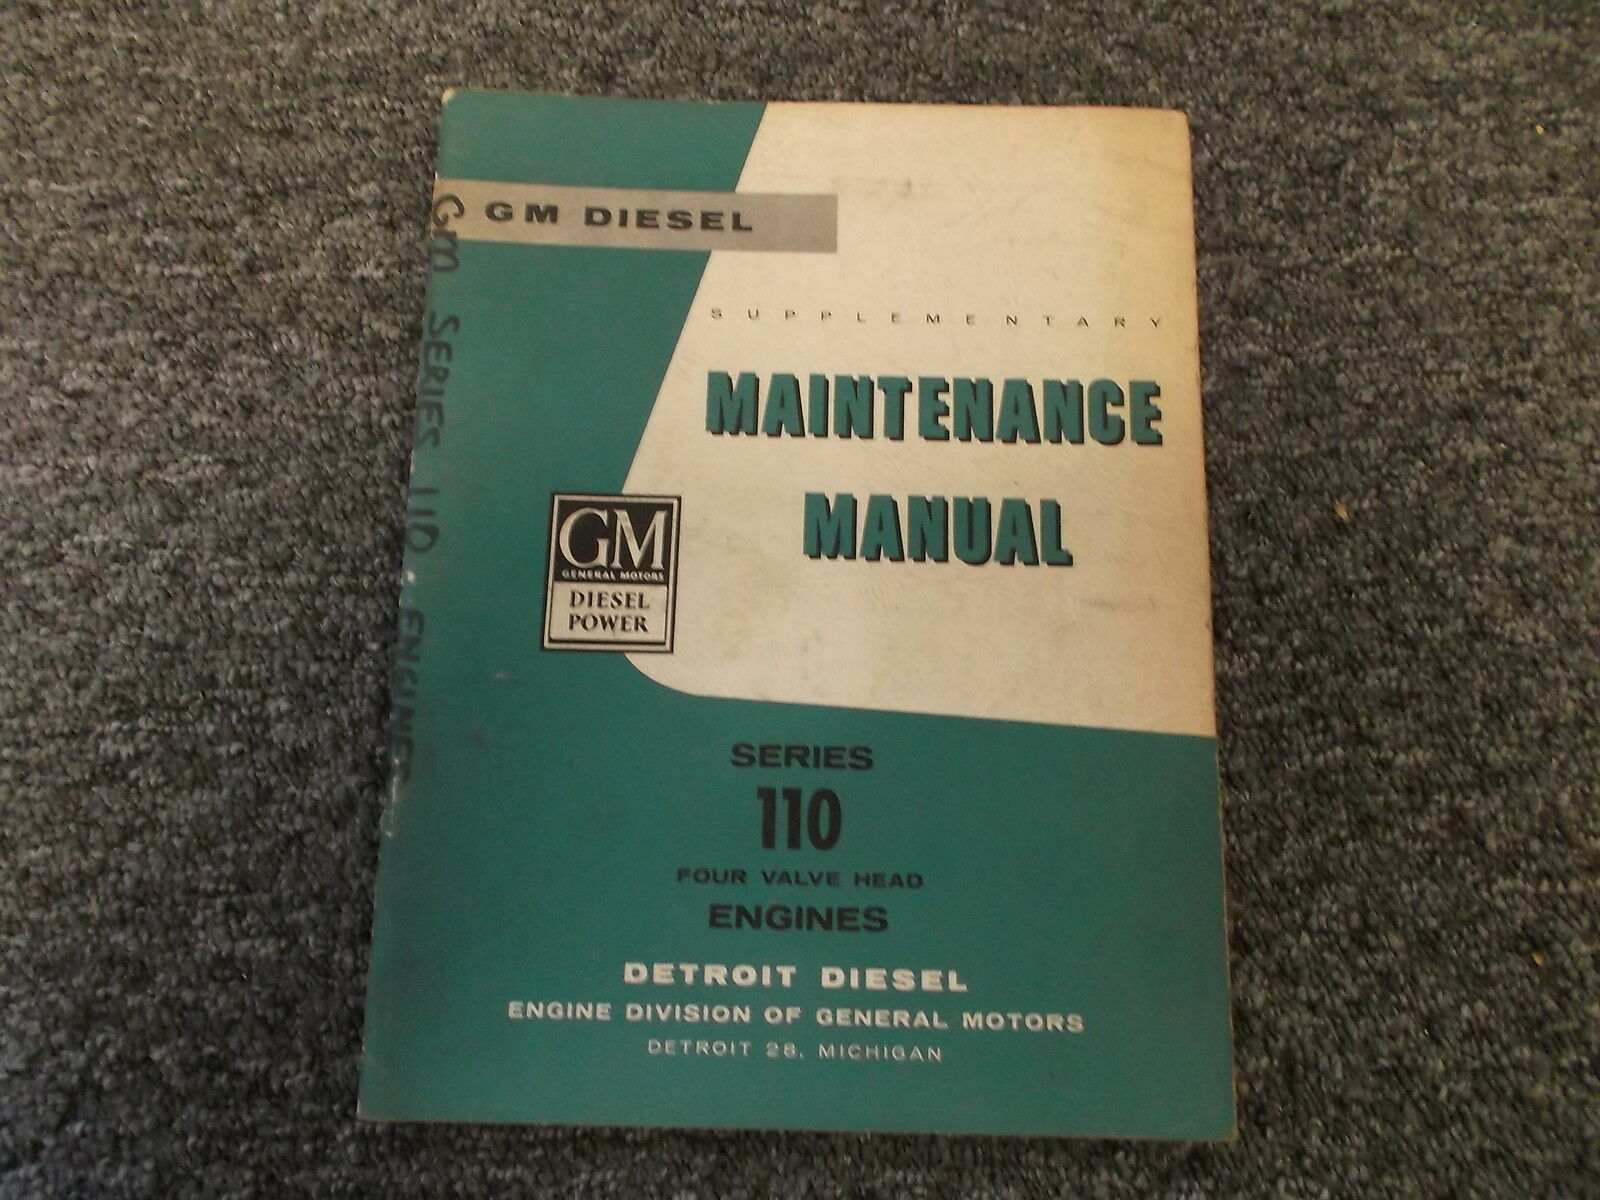 Detroit Diesel GM 4 Four Head 110 Series Engine Shop Service Repair Manual  1 of 1Only 1 available See More